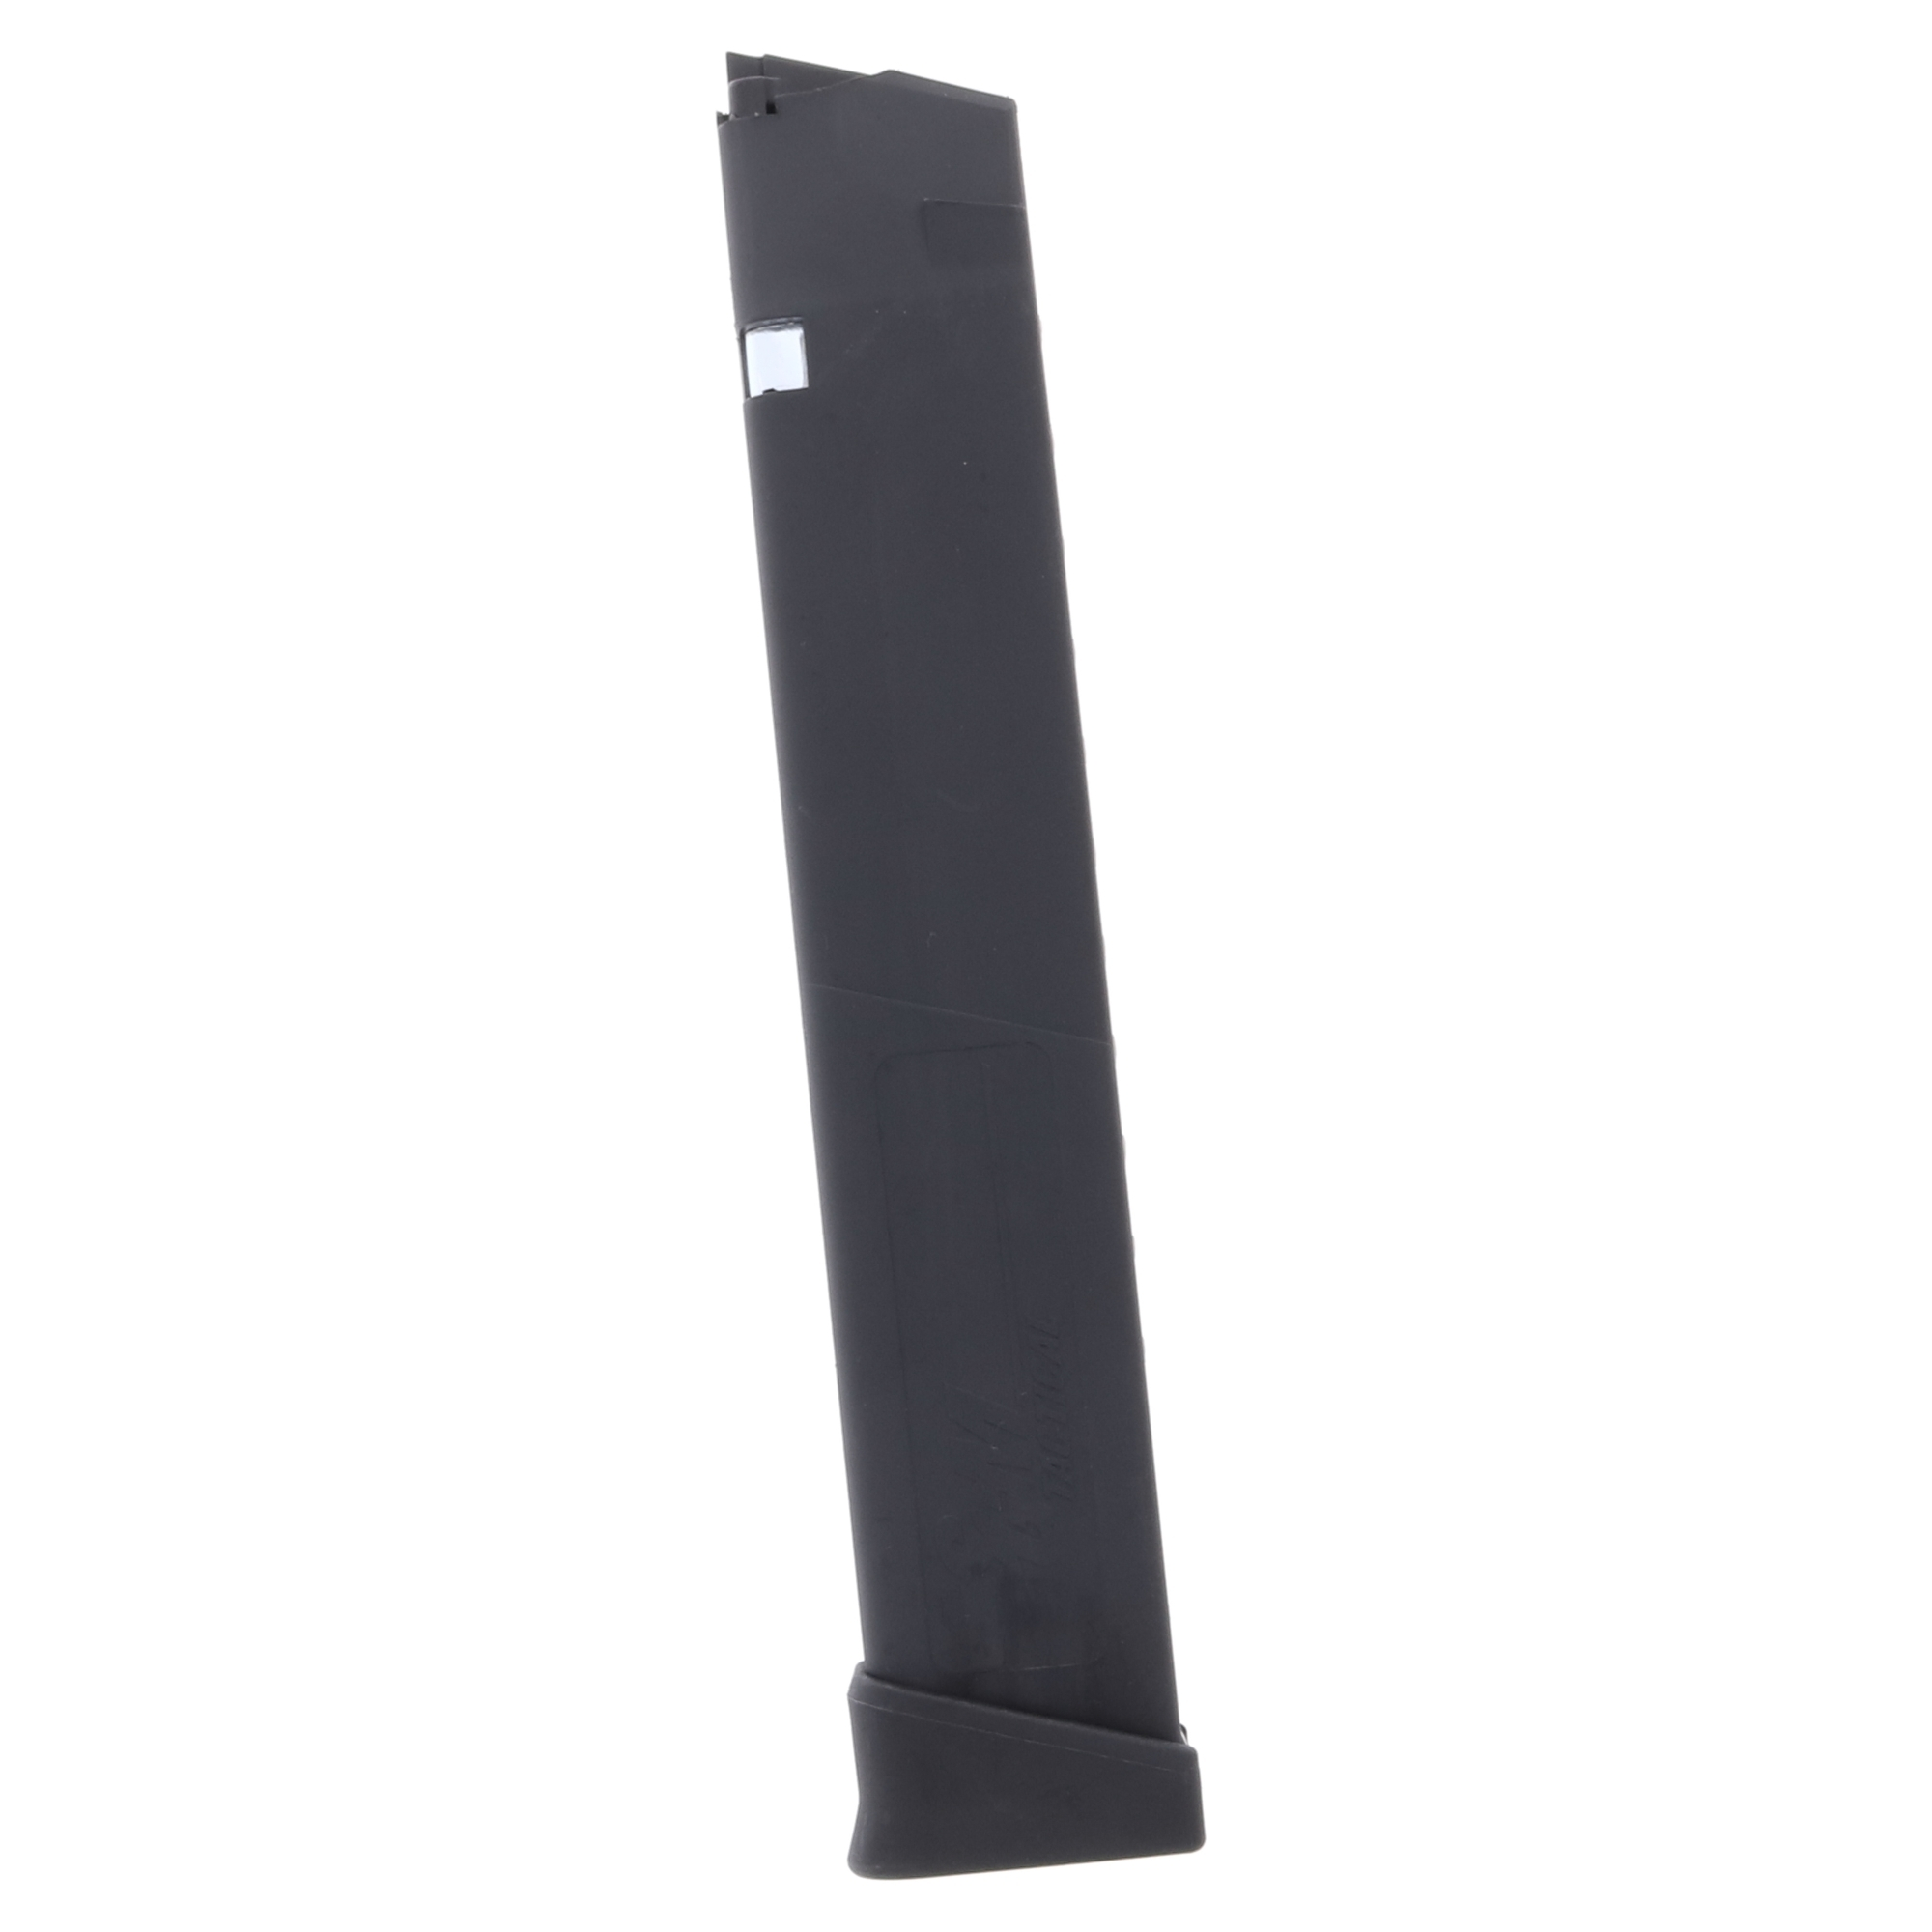 SGM Tactical Glock 21, 30, 41, .45 ACP 26-Round Polymer Magazine